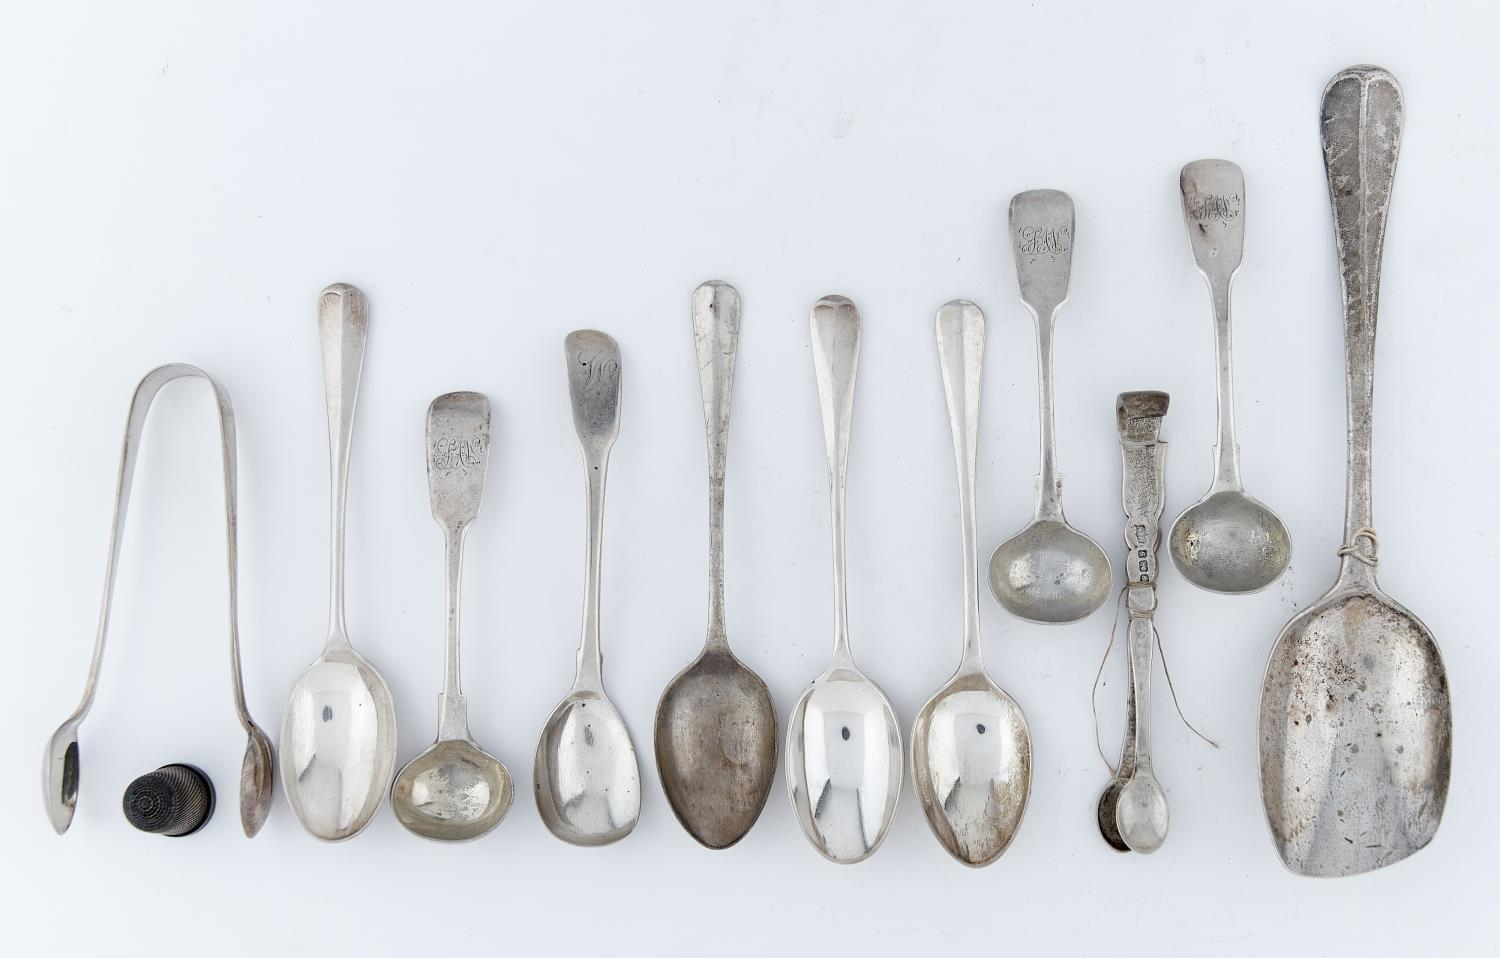 MISCELLANEOUS GEORGE III AND LATER SMALL SILVER FLATWARE, ETC, 7OZS 10DWTS Several items worn or